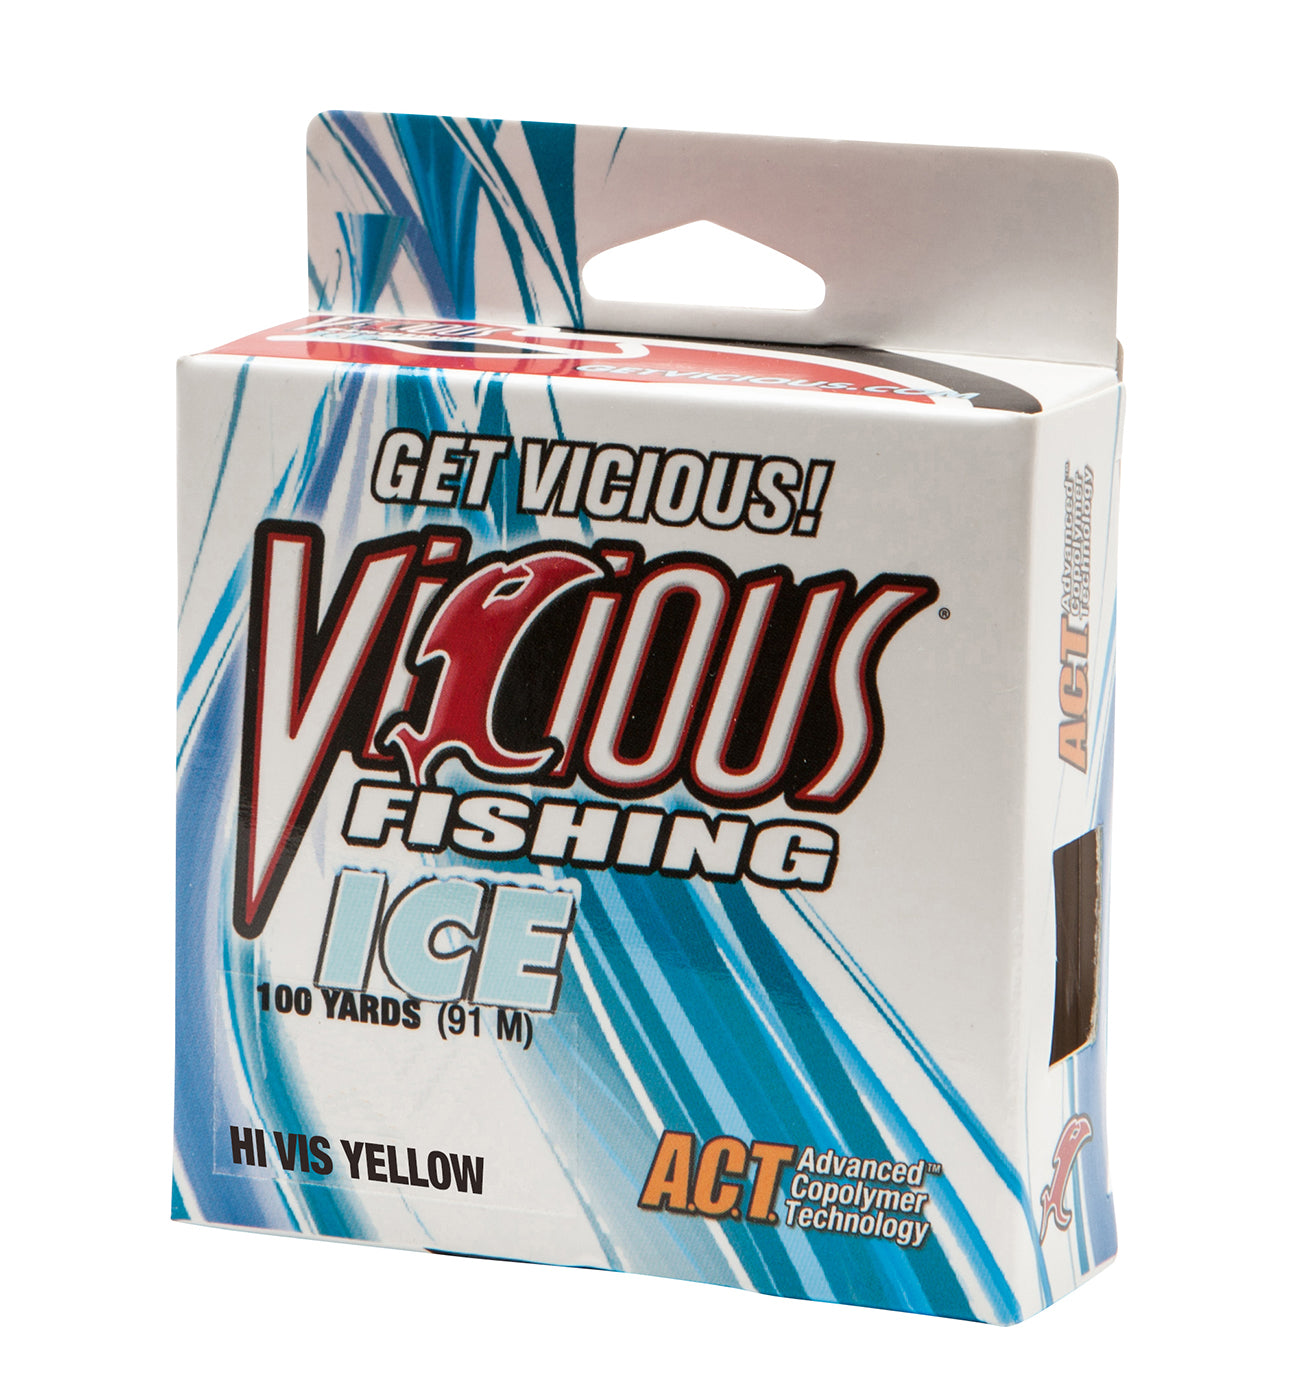 1lb Vicious Hi-Vis Yellow Ice - 100 Yards